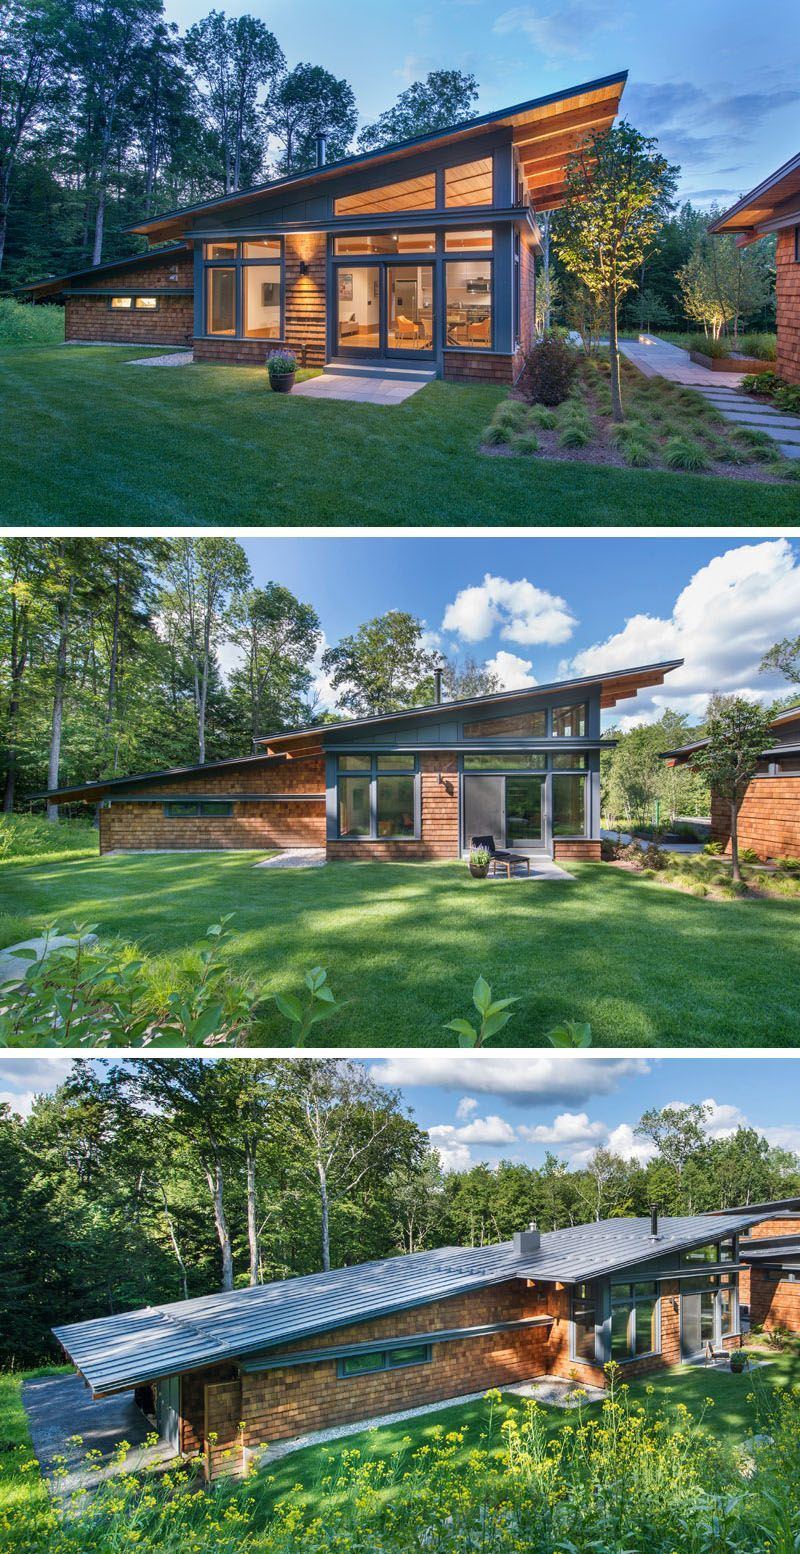 Green mountain getaway by flavin architects wood shingles door architects malvernweather Choice Image